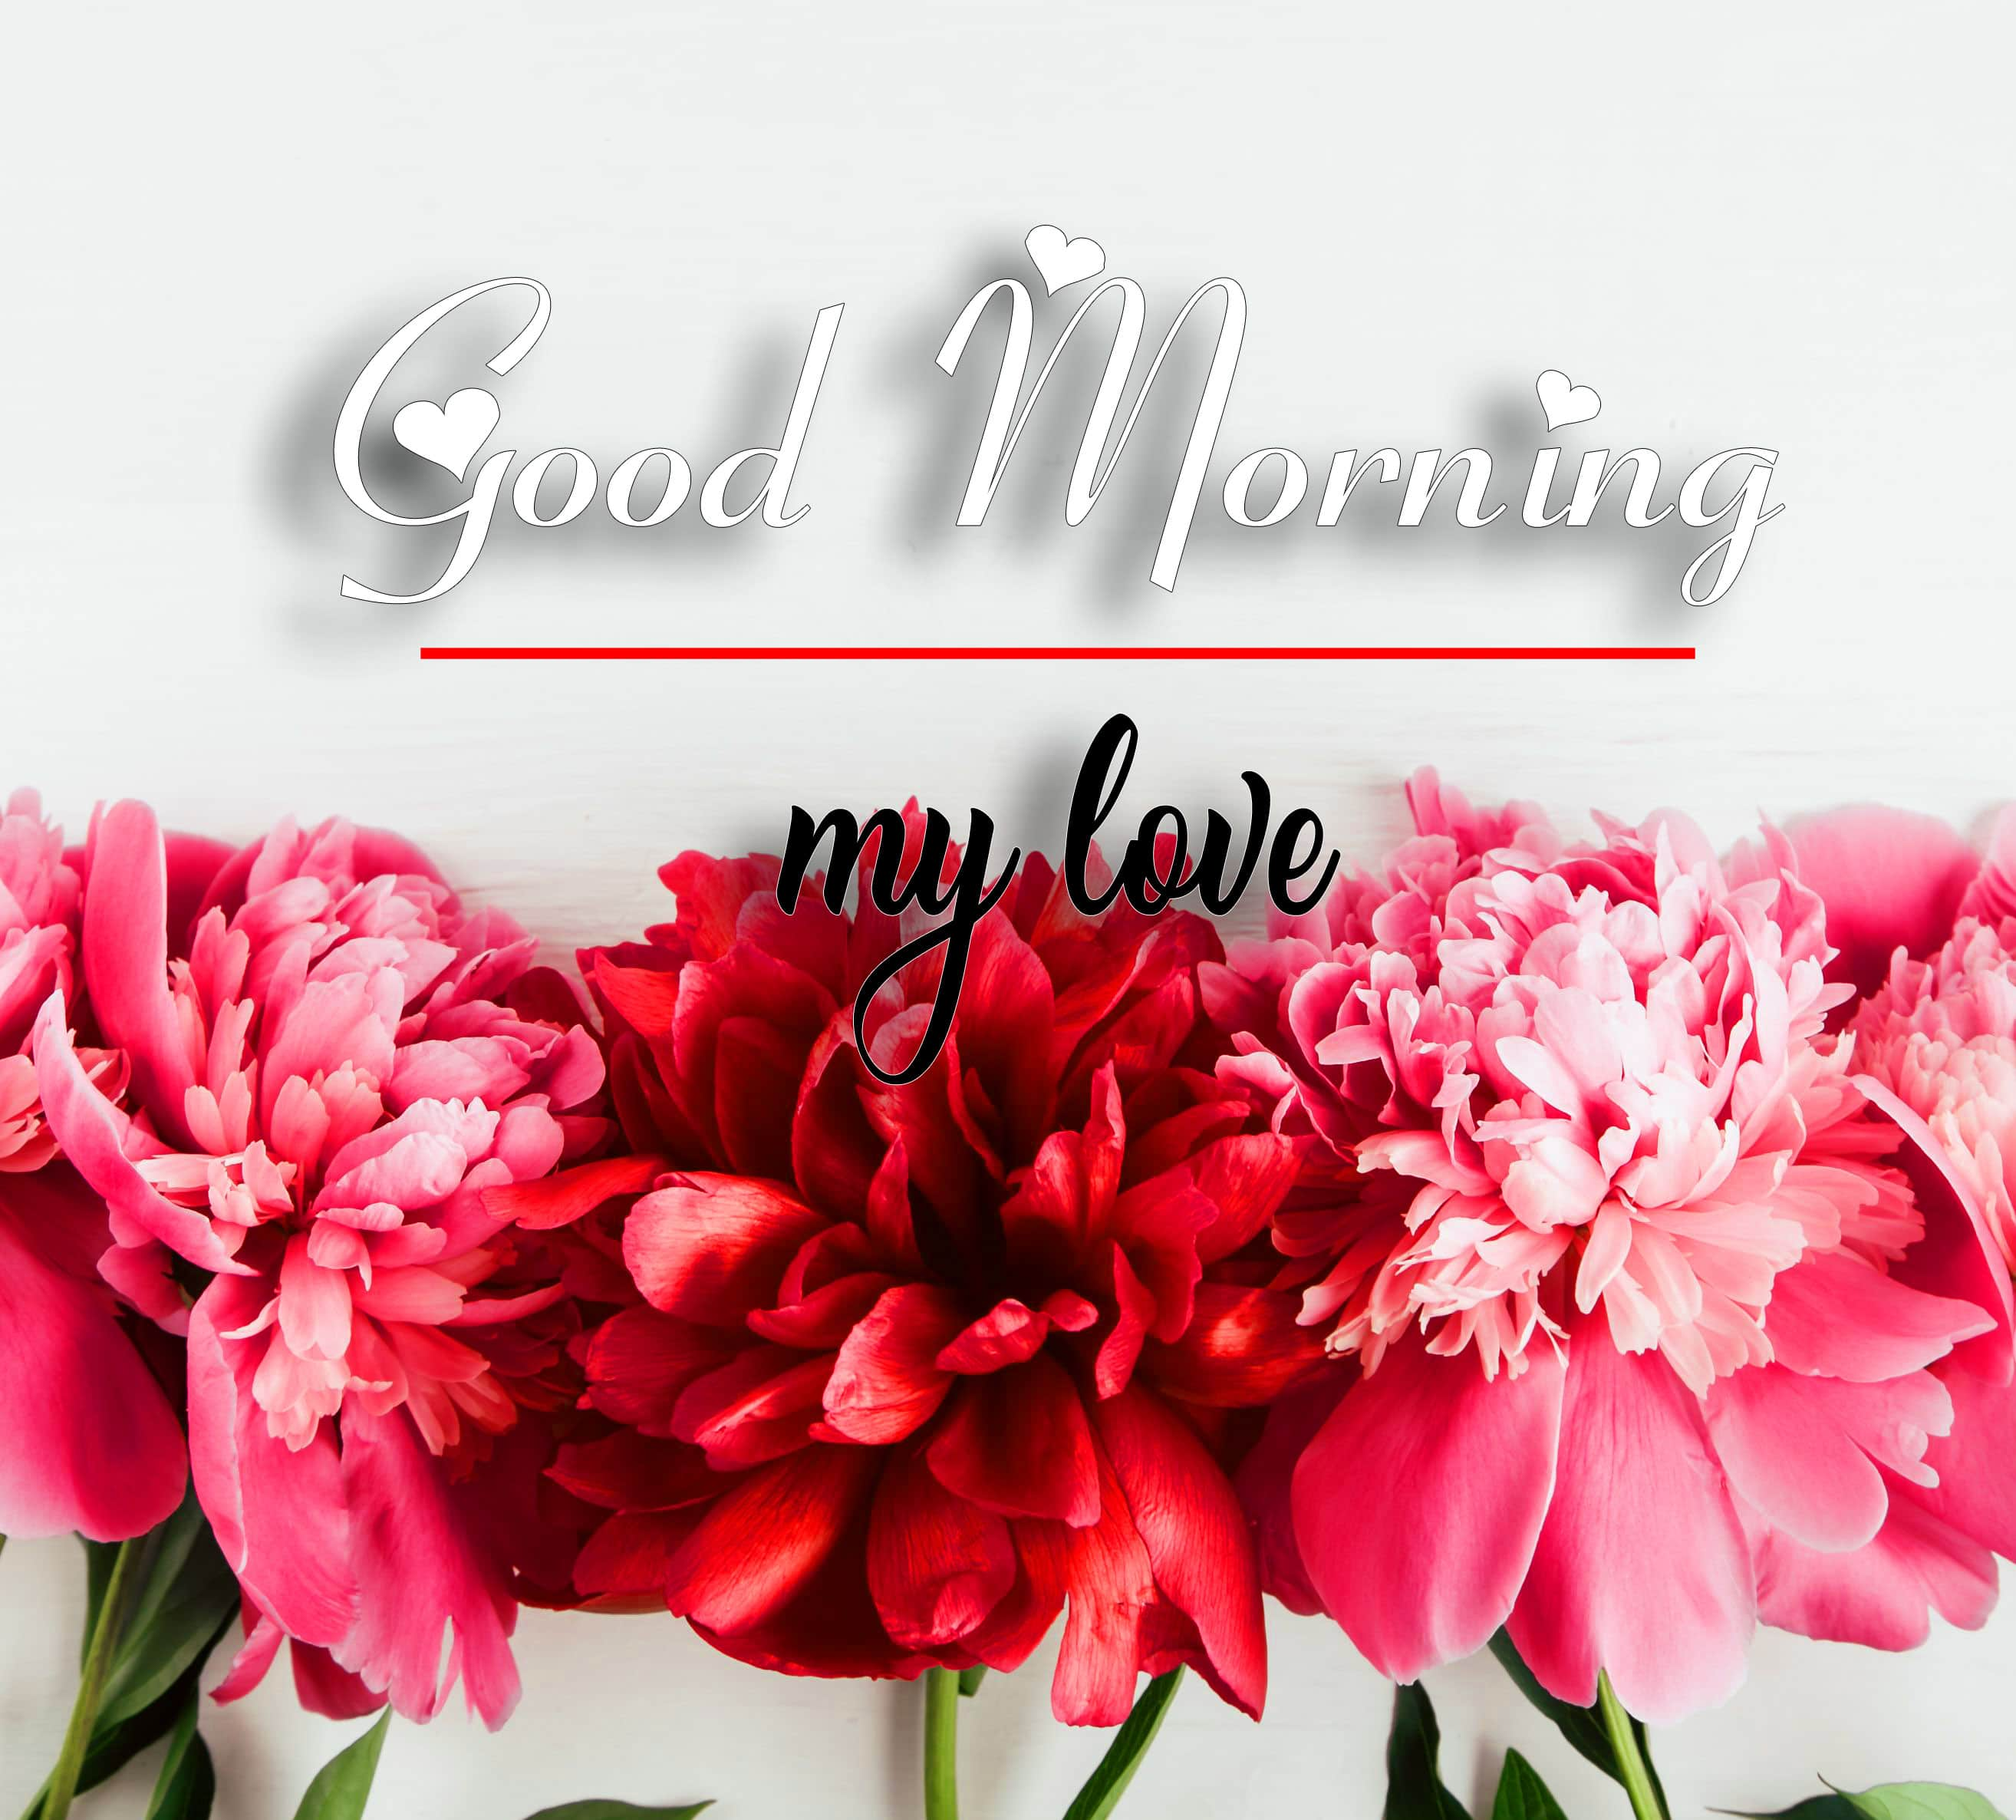 Good Morning Wallpaper Images 1